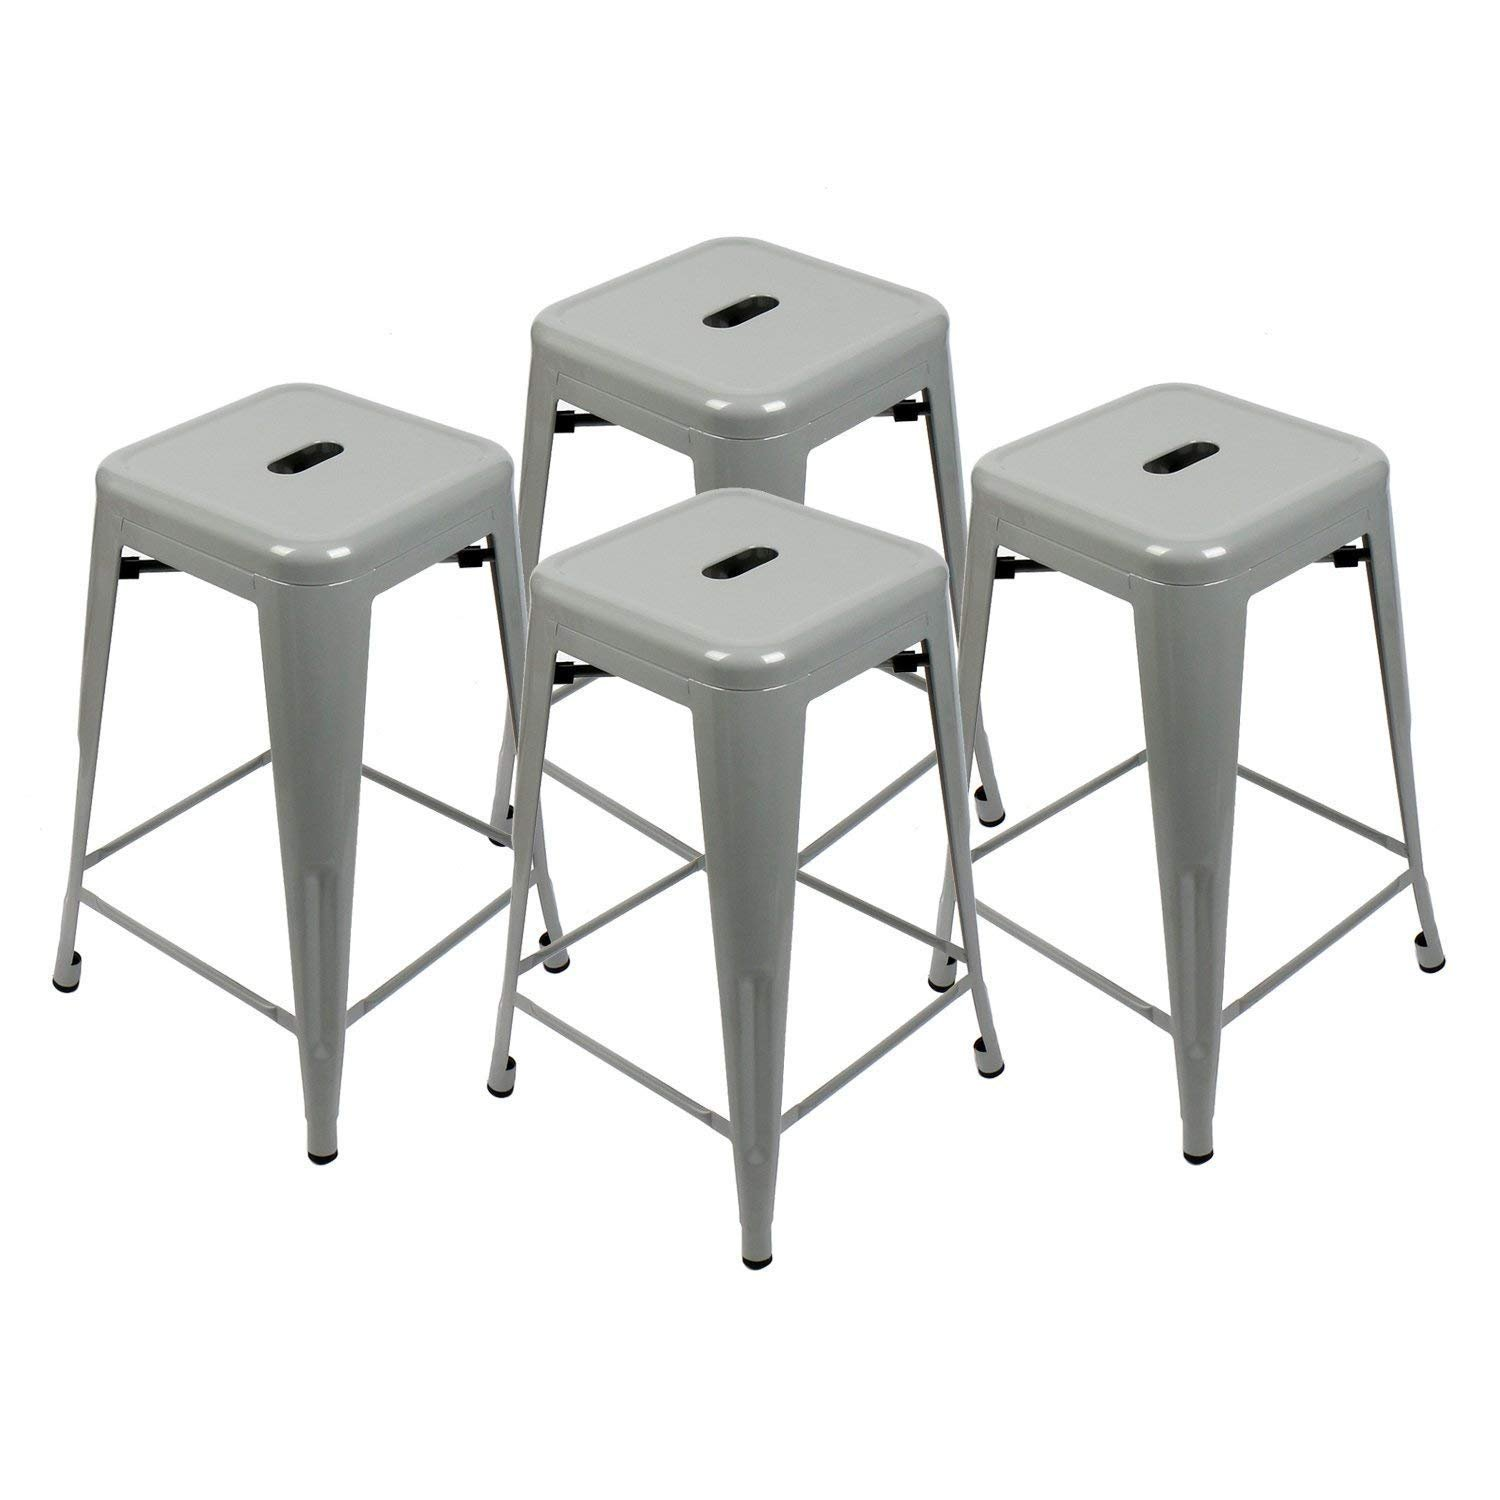 Set of 4-24'' Metal Stools High Backless Indoor-Outdoor Counter Height Stackable Bar Stools (Grey Barstool)